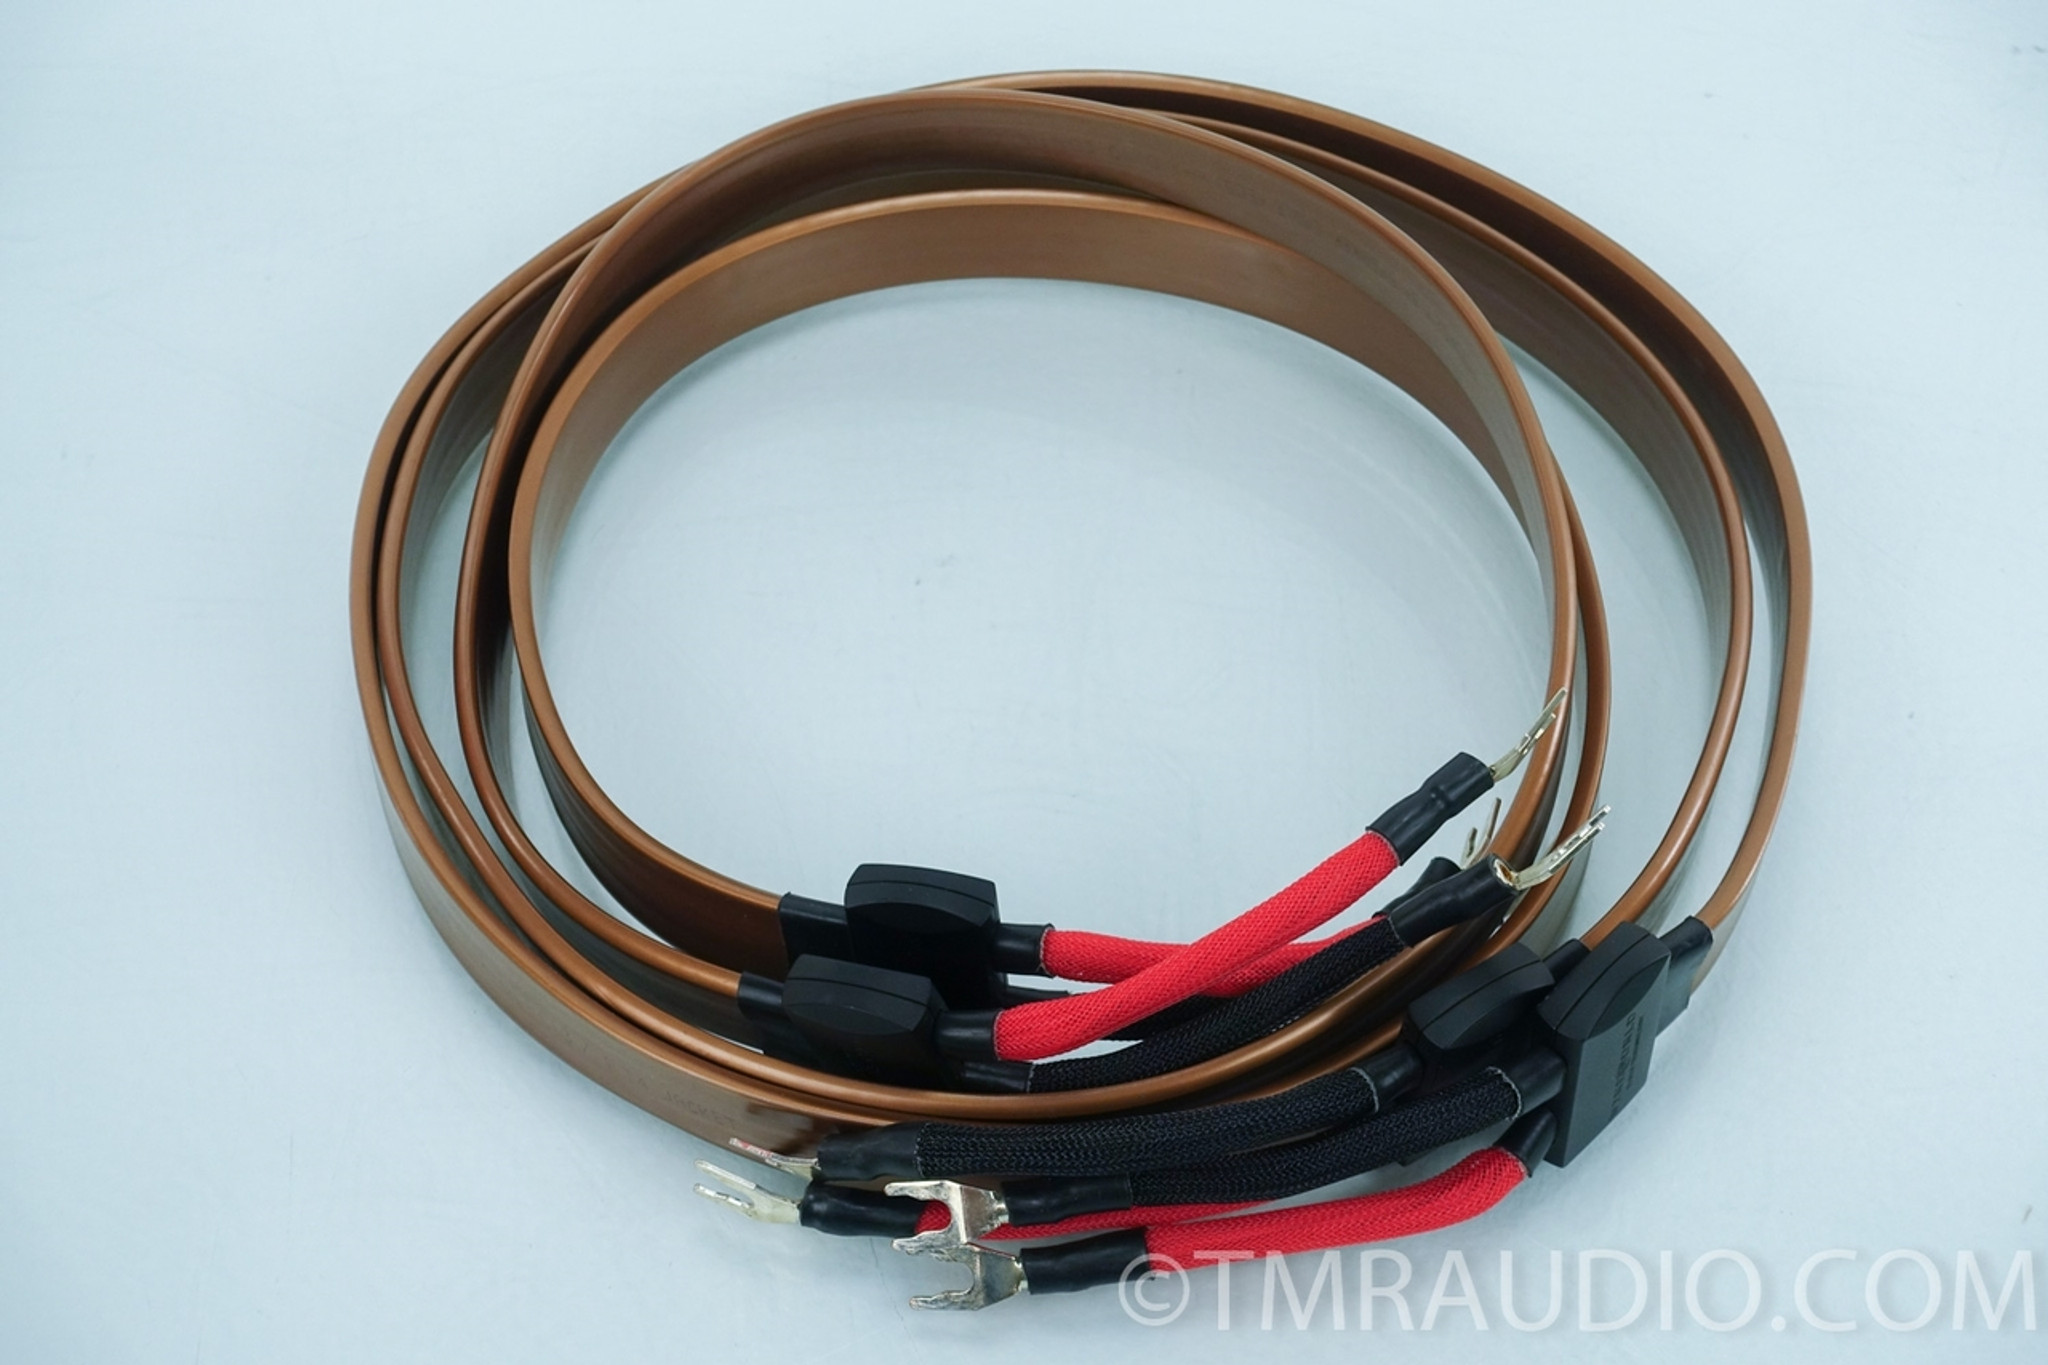 wireworld eclipse 5 2 speaker cables 6 39 pair spades the music room. Black Bedroom Furniture Sets. Home Design Ideas